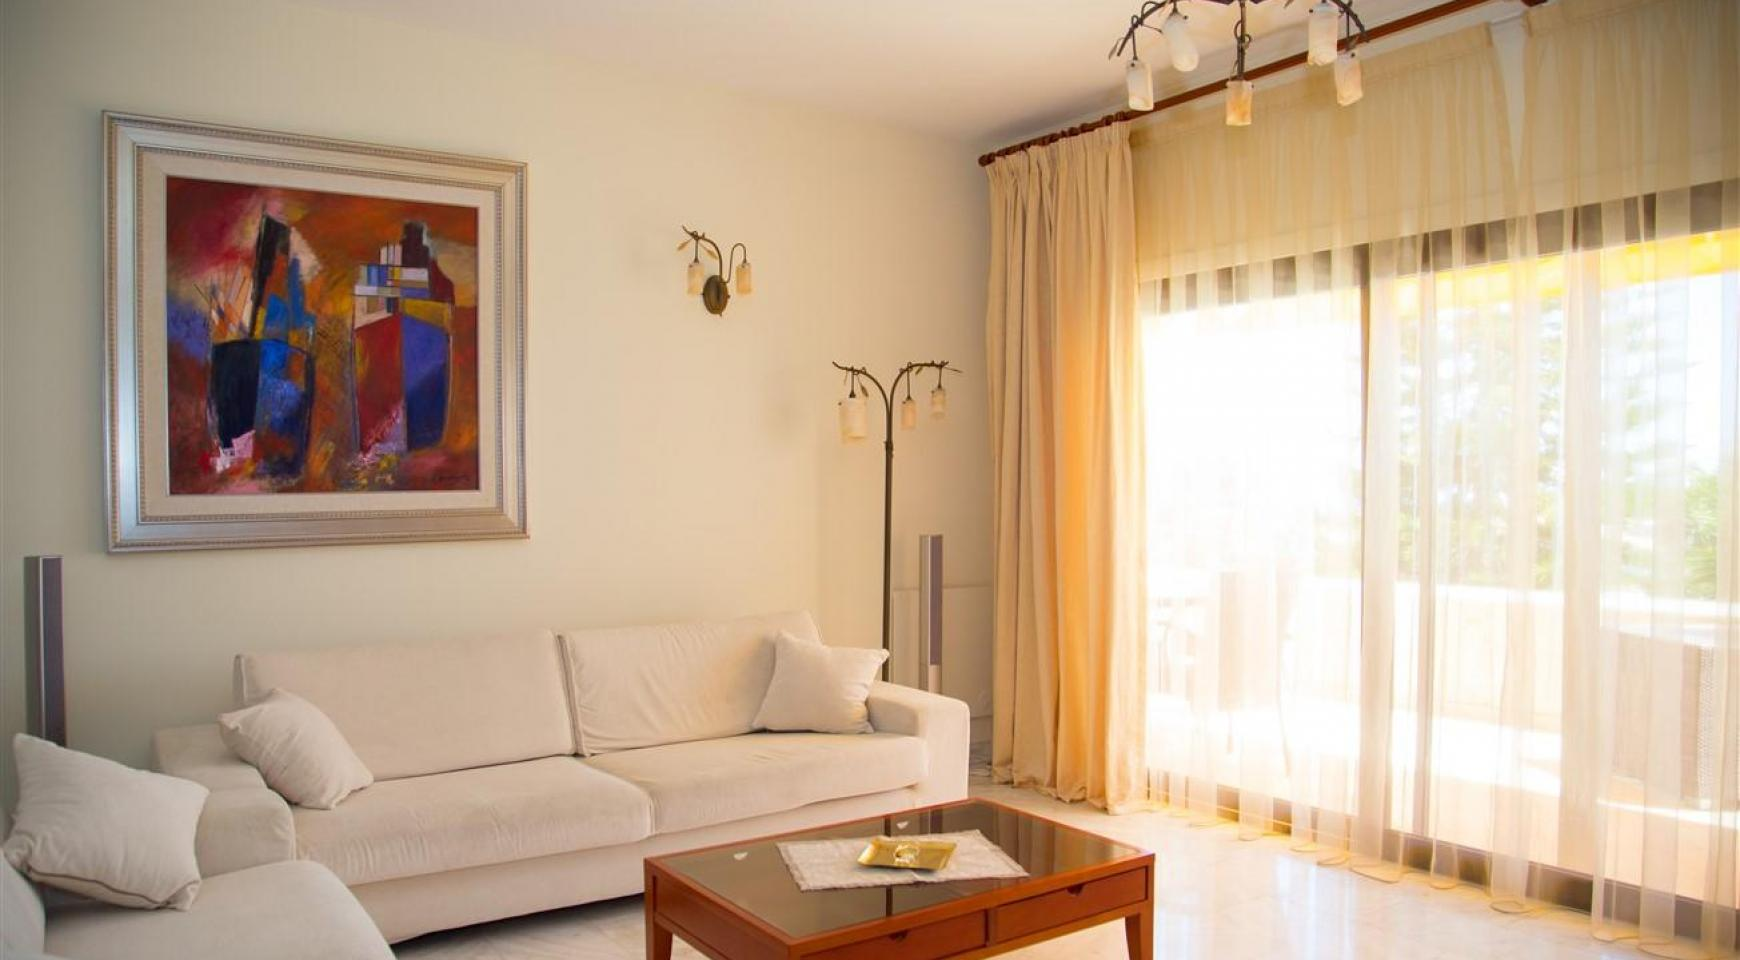 3 Bedroom Apartment in a Gated Complex by the Sea - 23